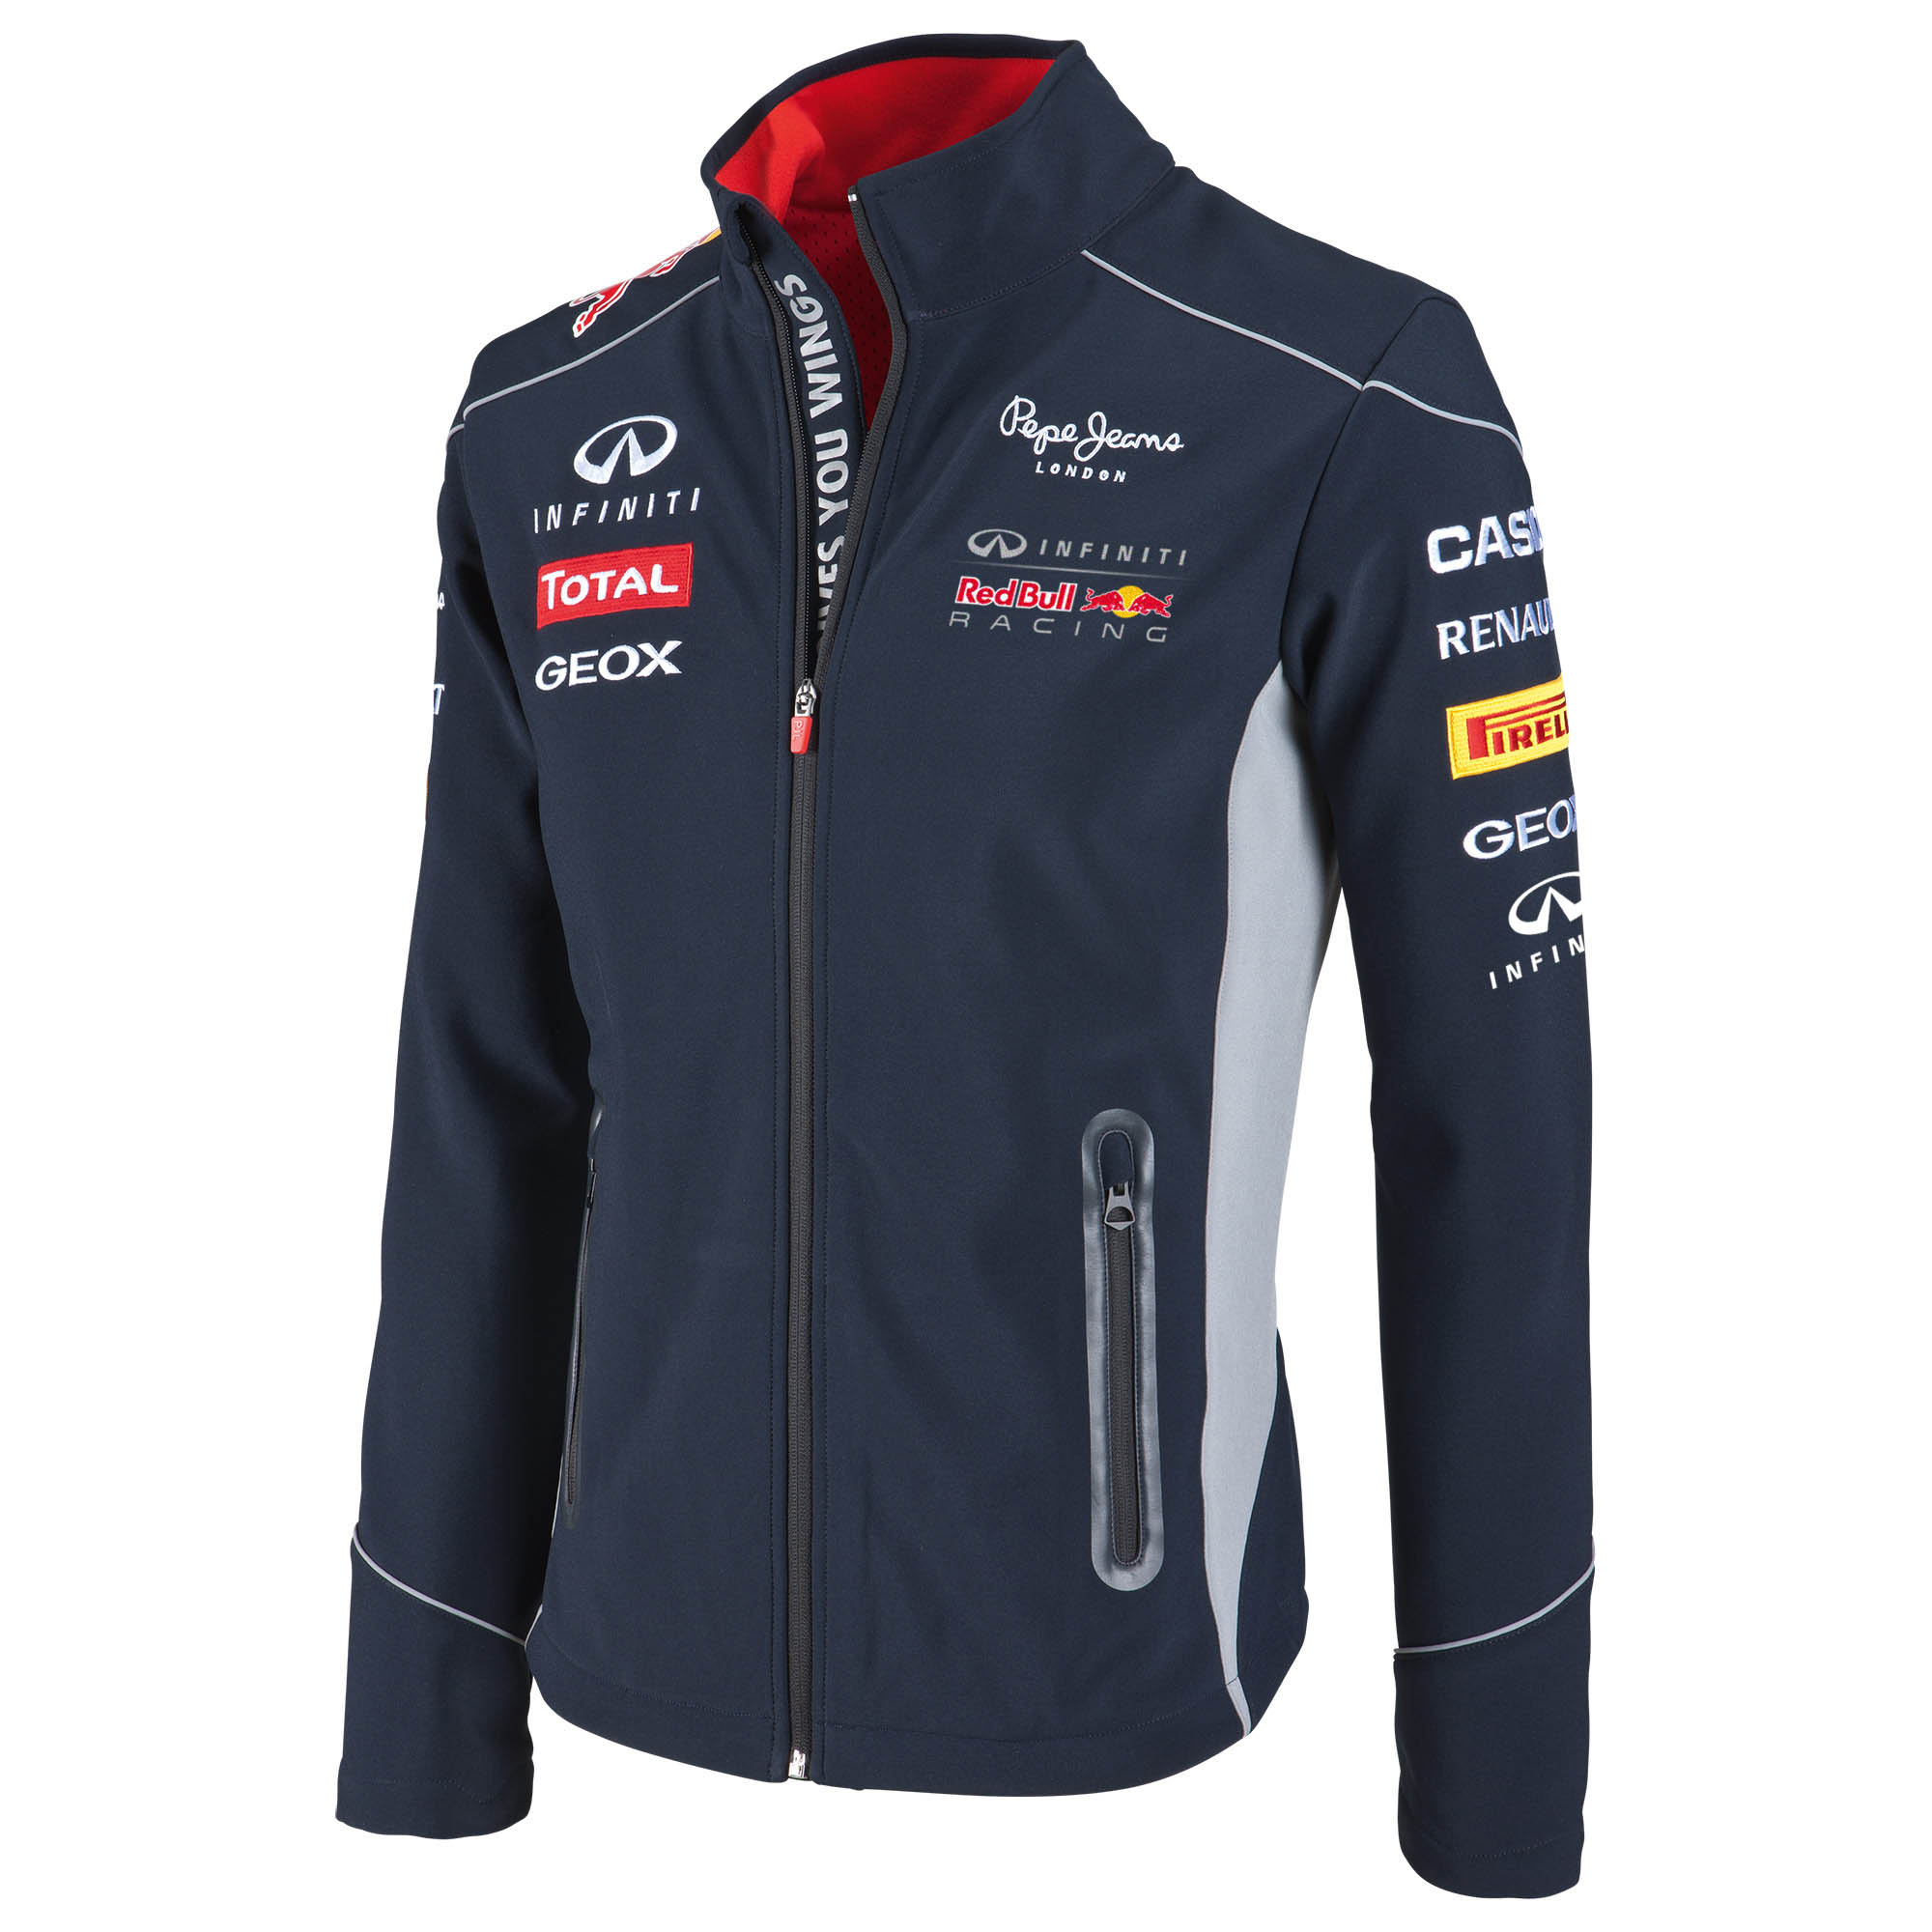 Infiniti Red Bull Racing 2013 Official Teamline Softshell Jacket